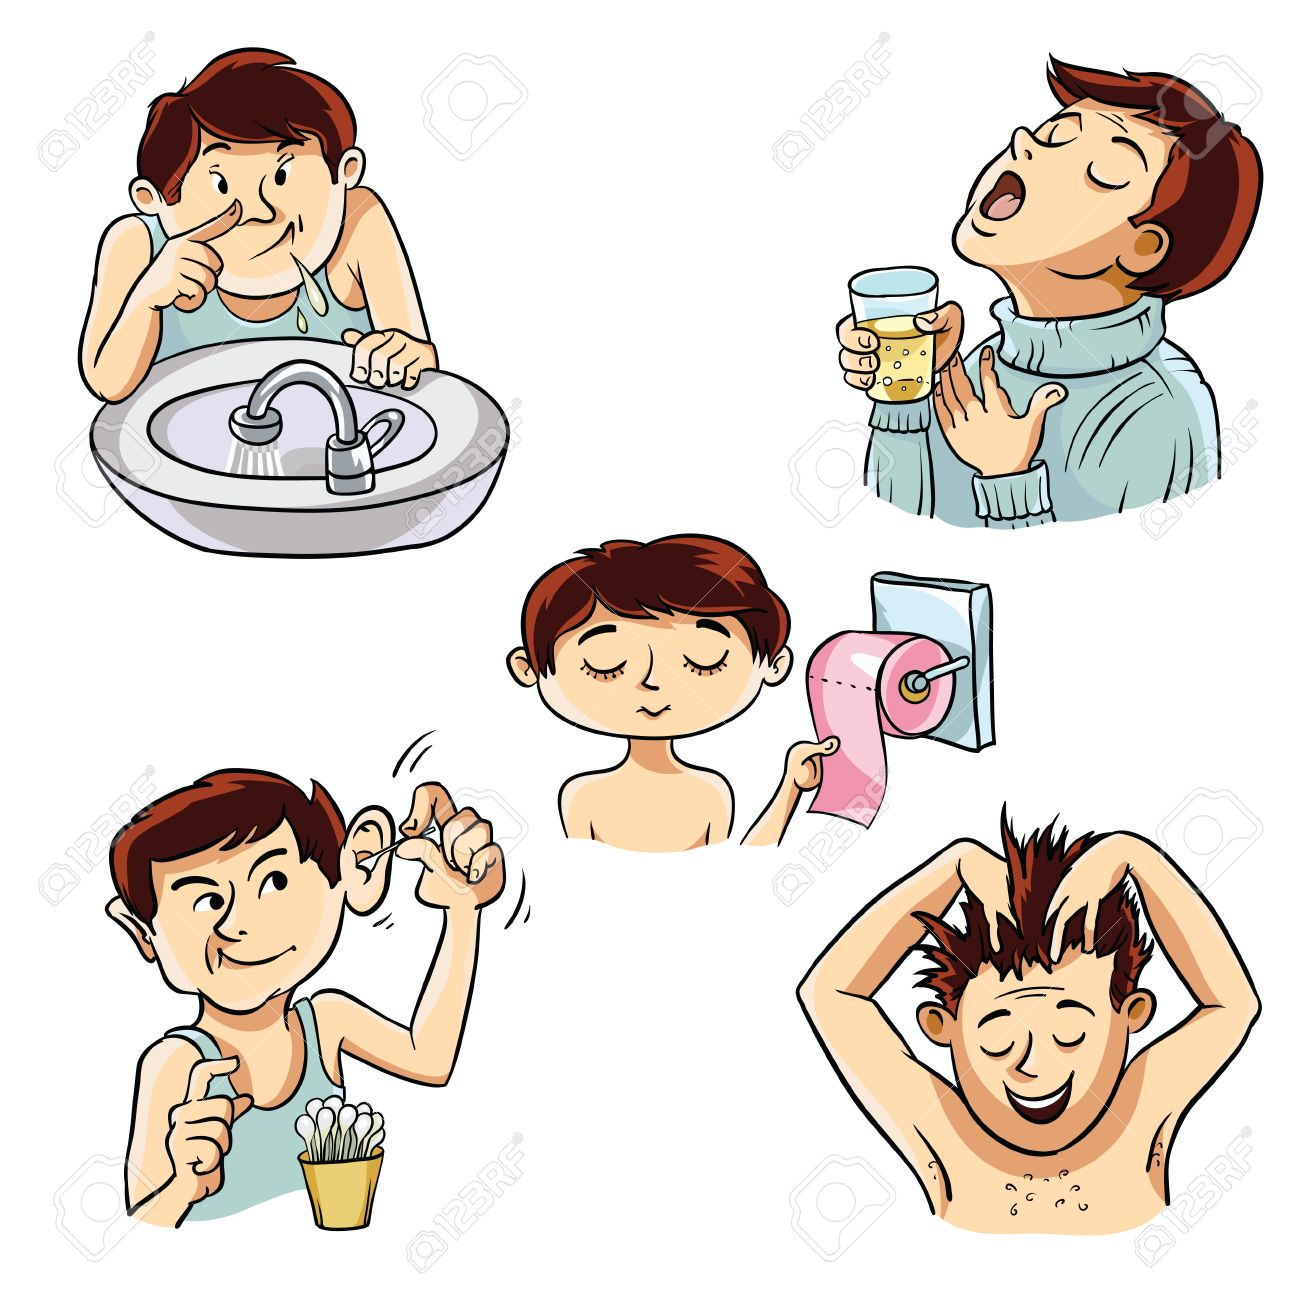 four images of a person involved in personal hygiene royalty free